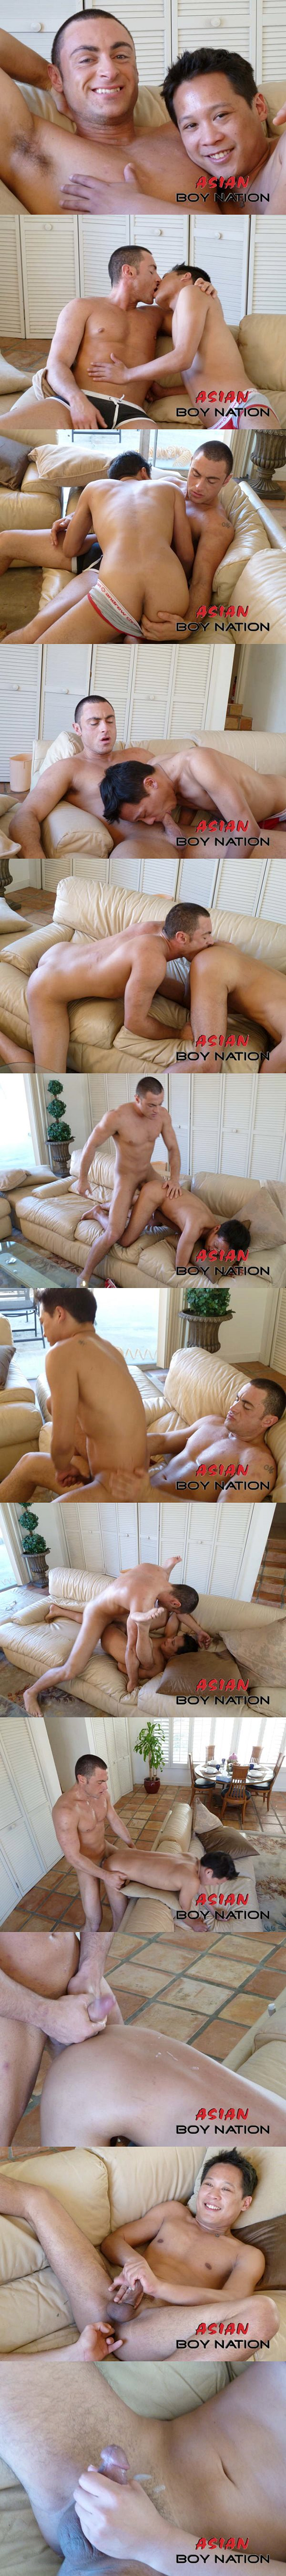 Muscle jock Tristan Phoenix fucks Danny Rohm in Porn Star Fucks Filipino Bottom at Asianboynation 02